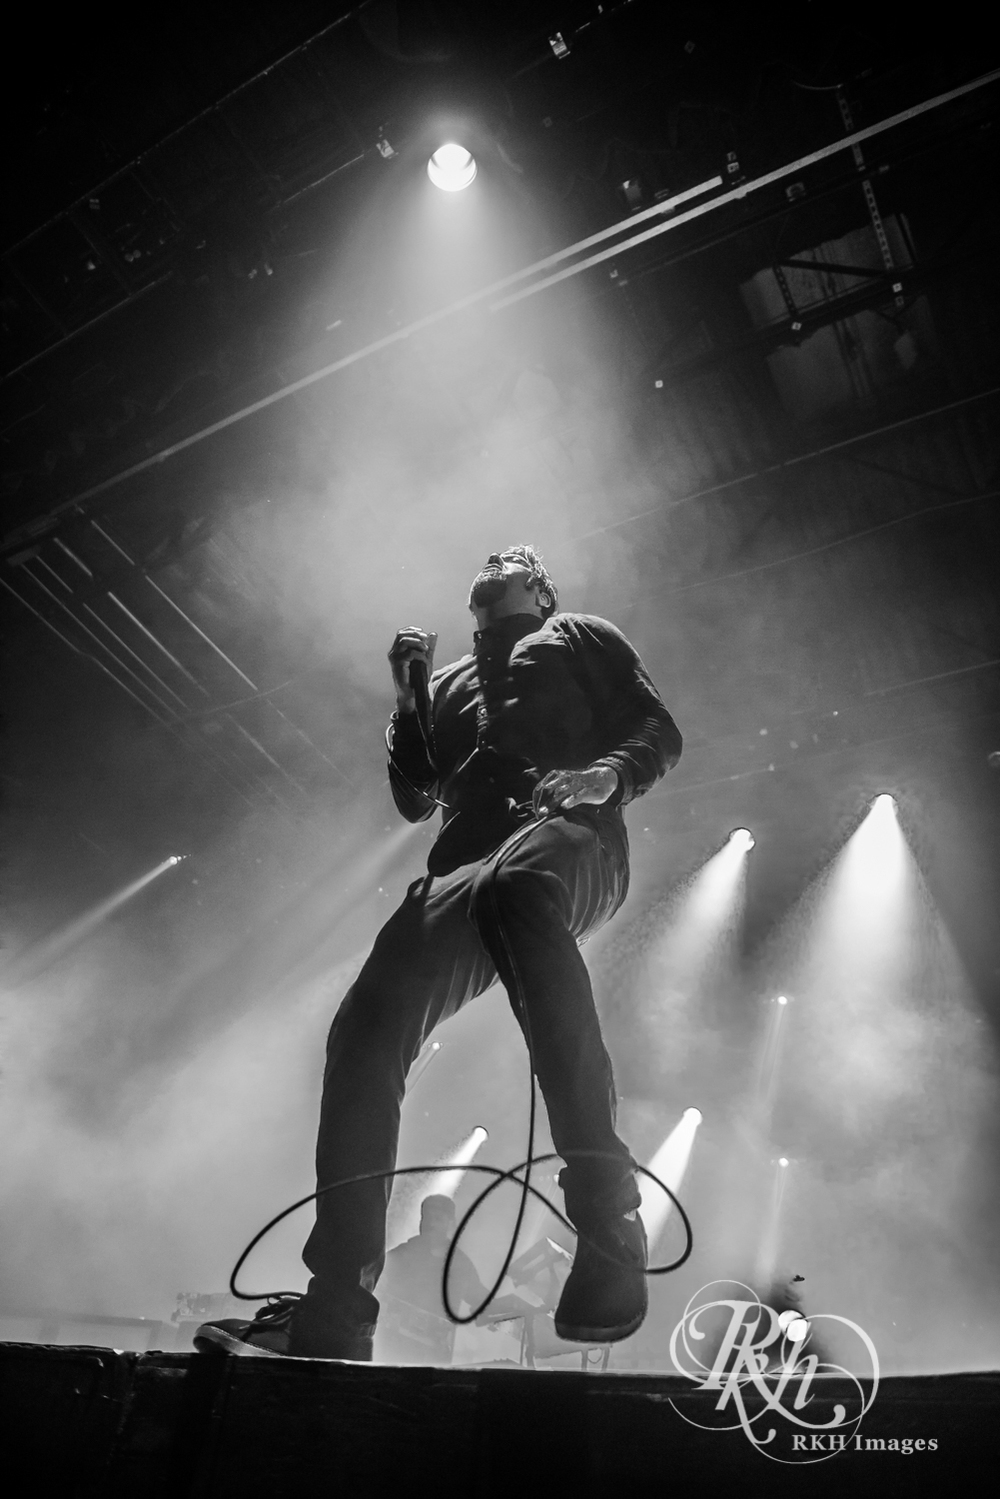 deftones rkh images (8 of 33).jpg